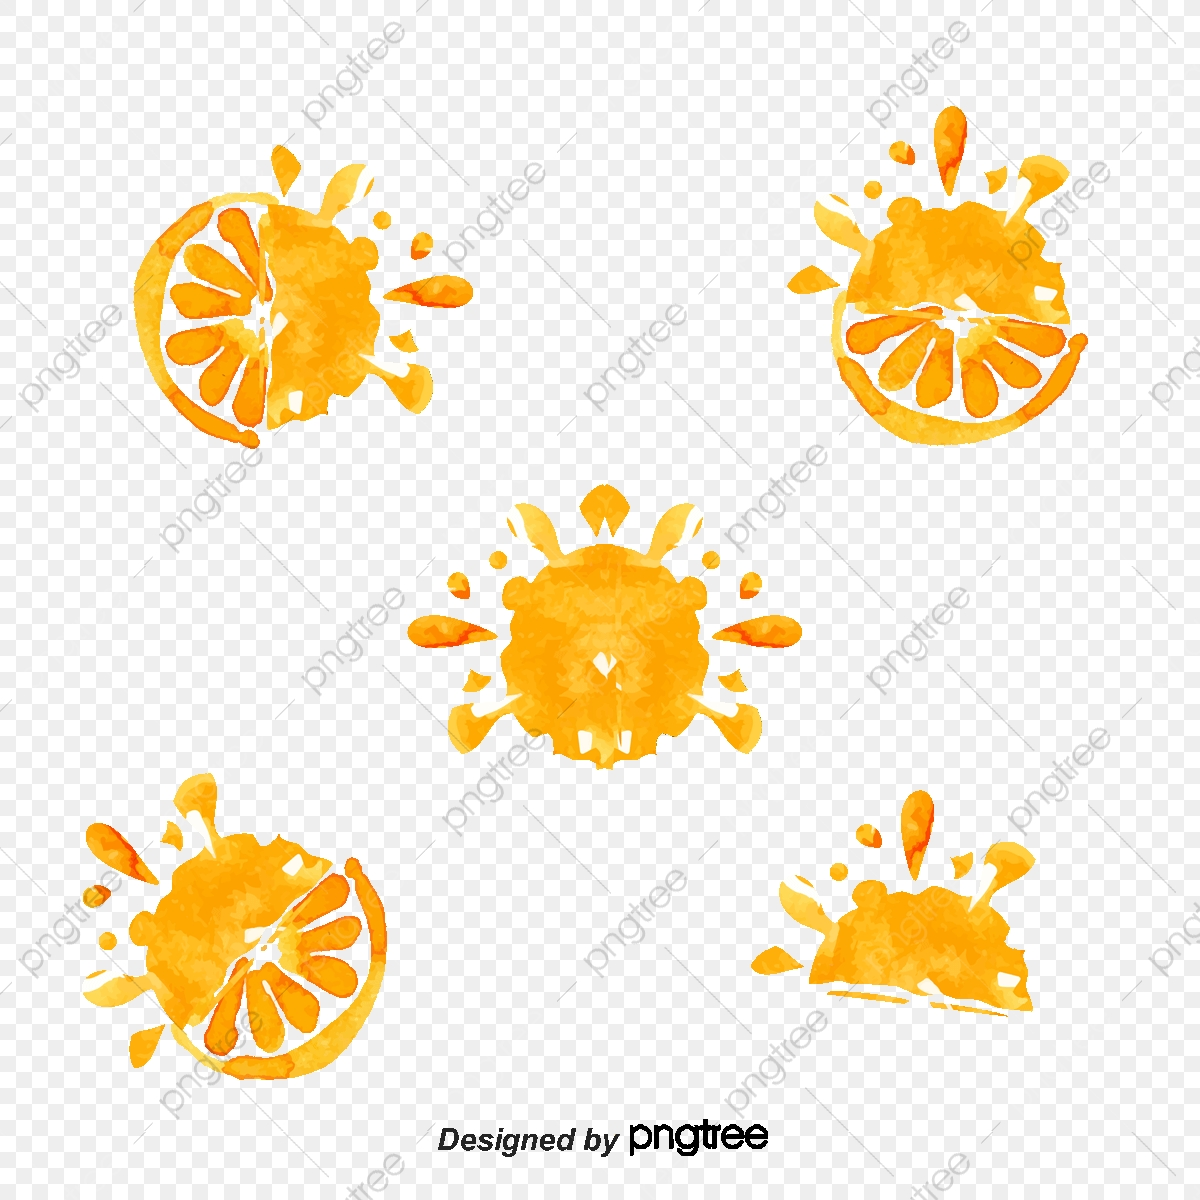 vector orange juice logo orange juice logo juice logo orange png transparent clipart image and psd file for free download https pngtree com freepng vector orange juice logo 586805 html